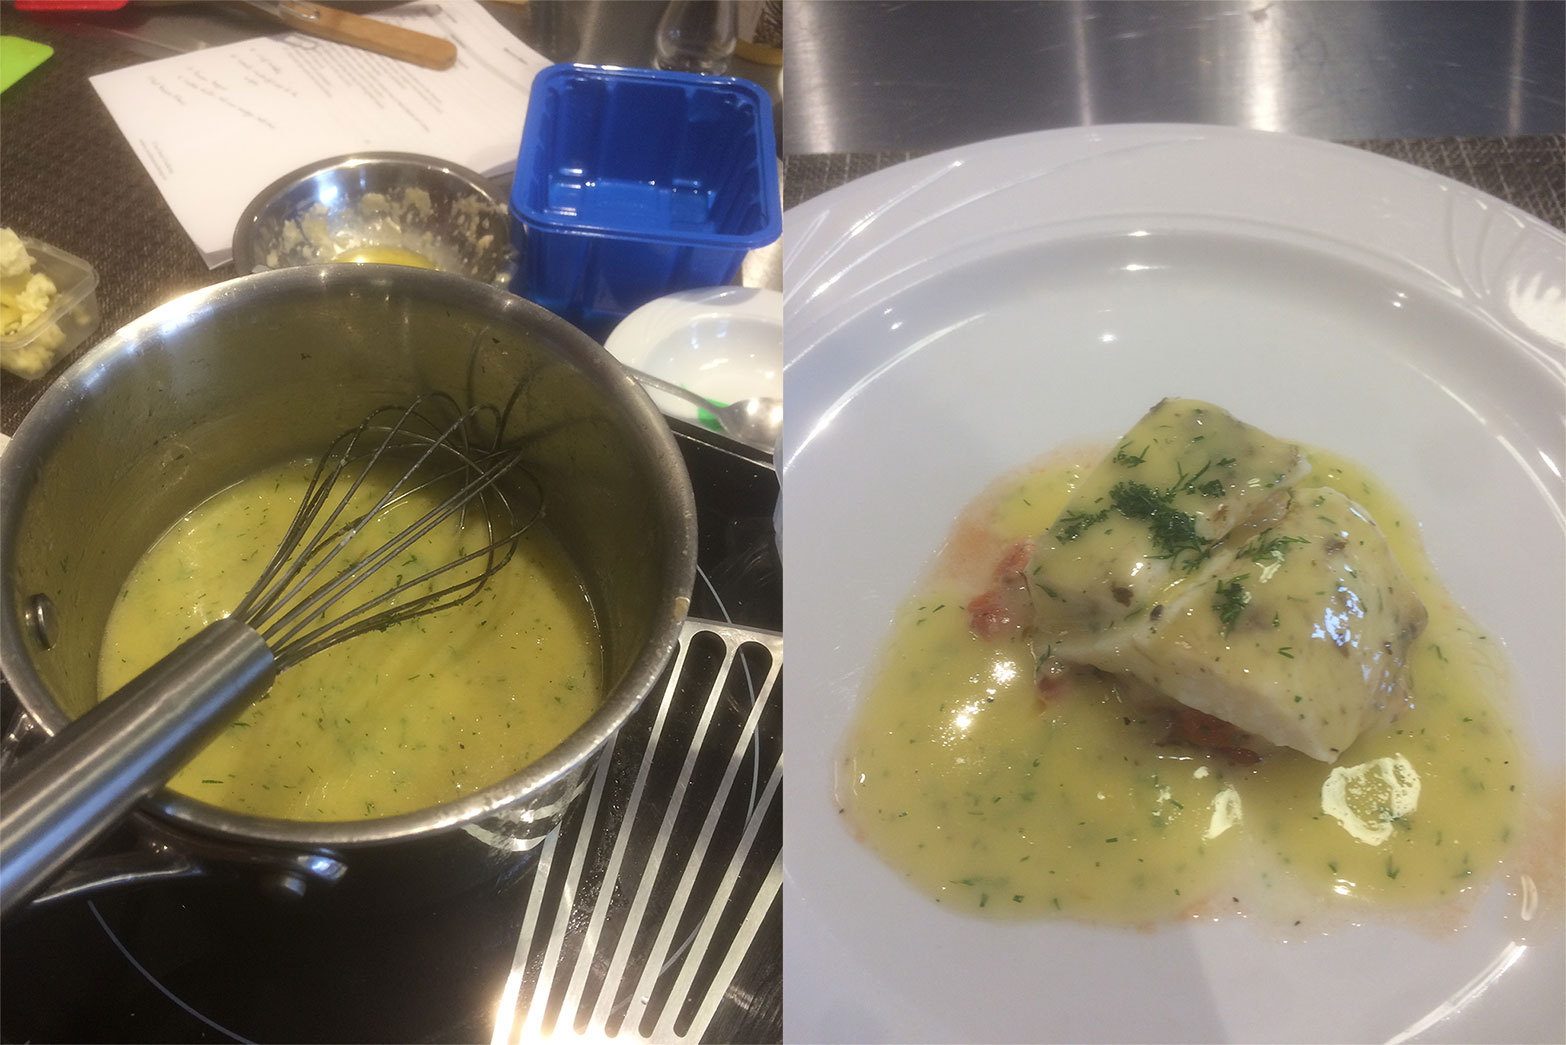 Beurre blanc on fish